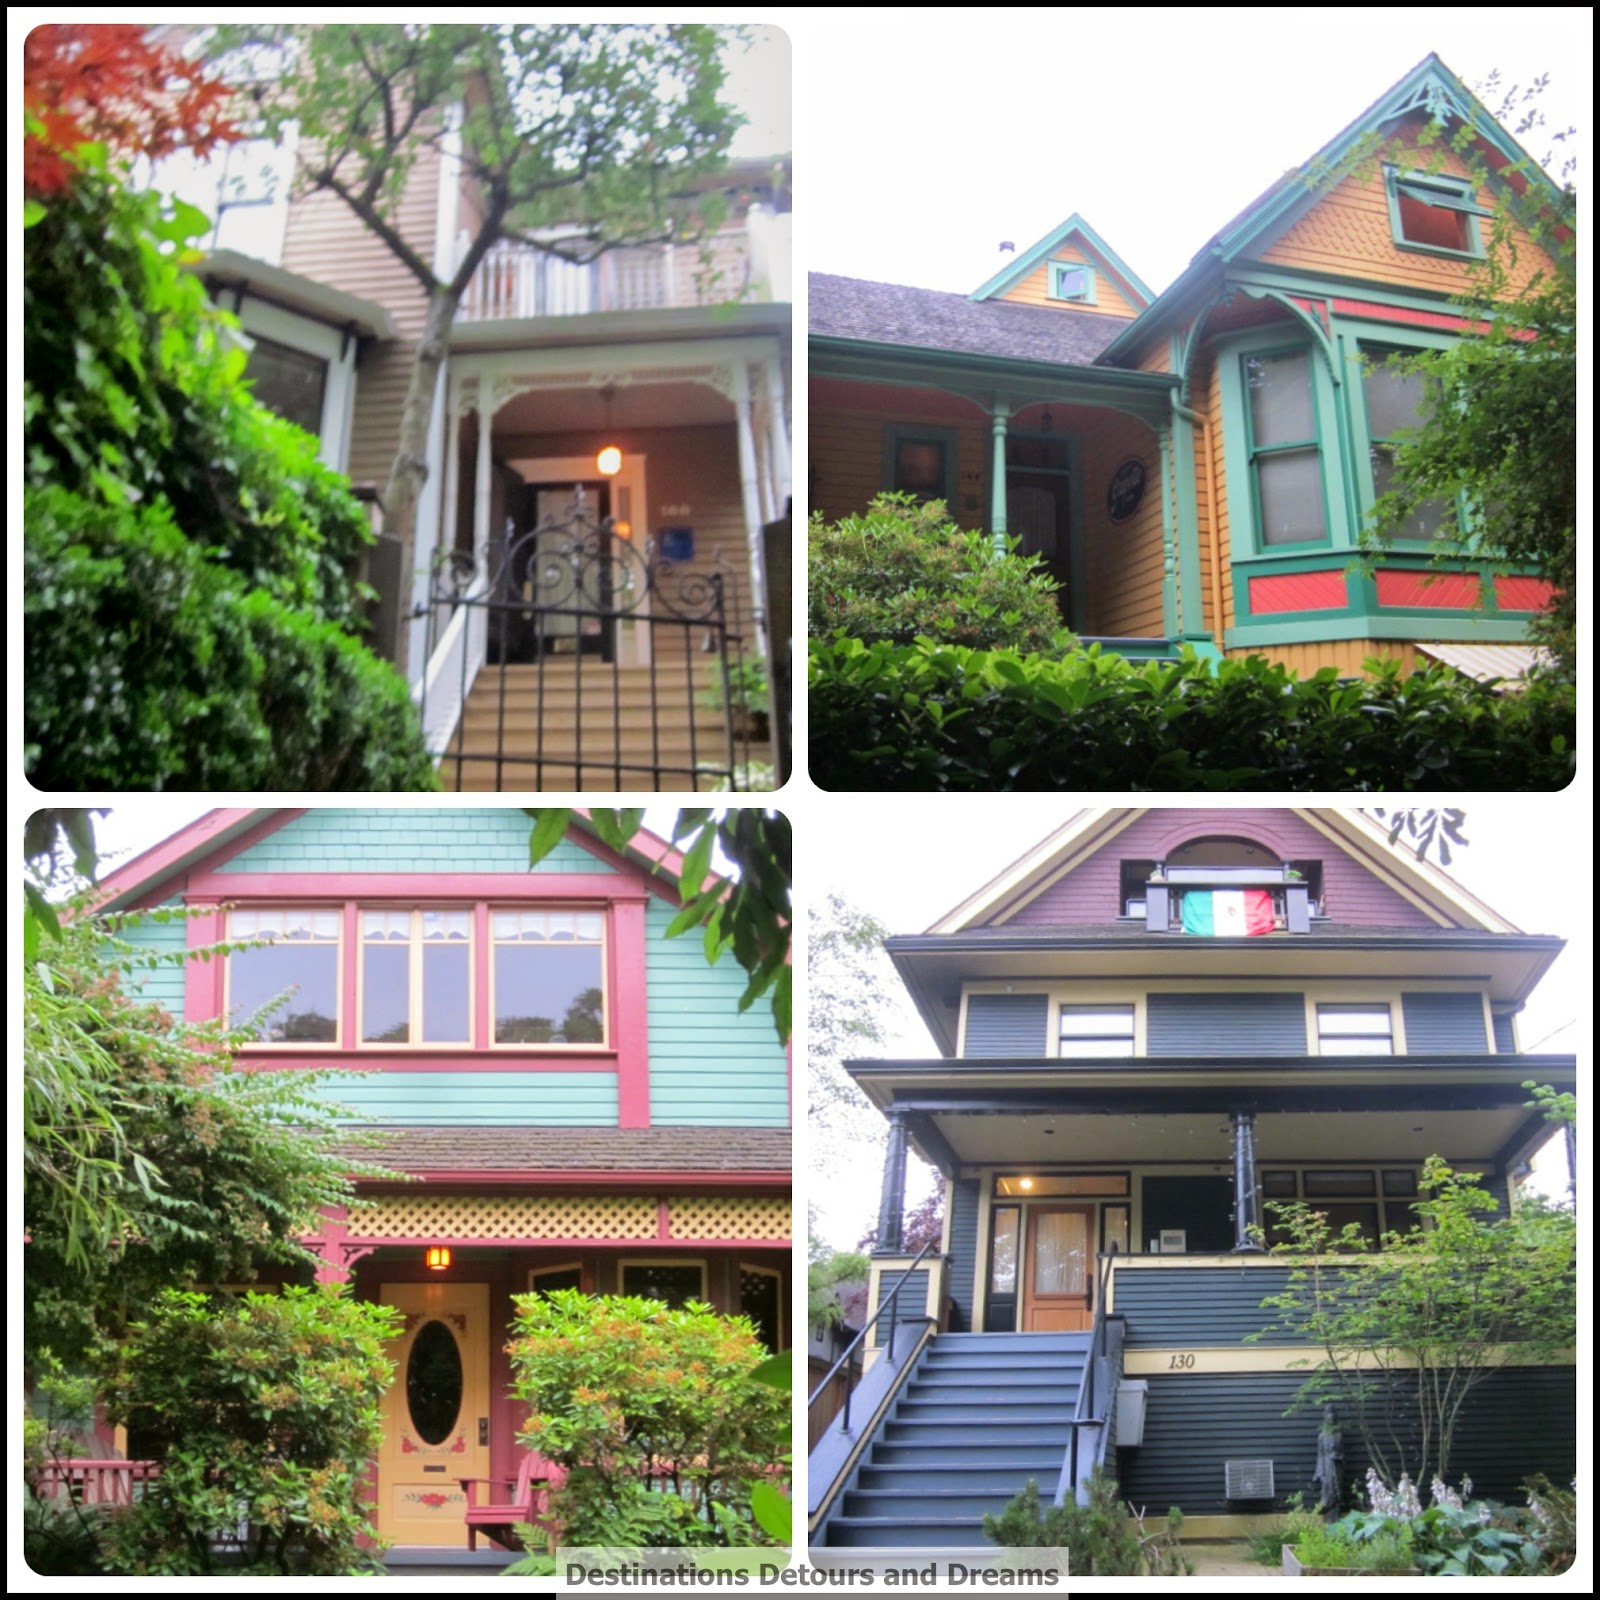 Heritage homes in Mount Pleasant neighbourhood